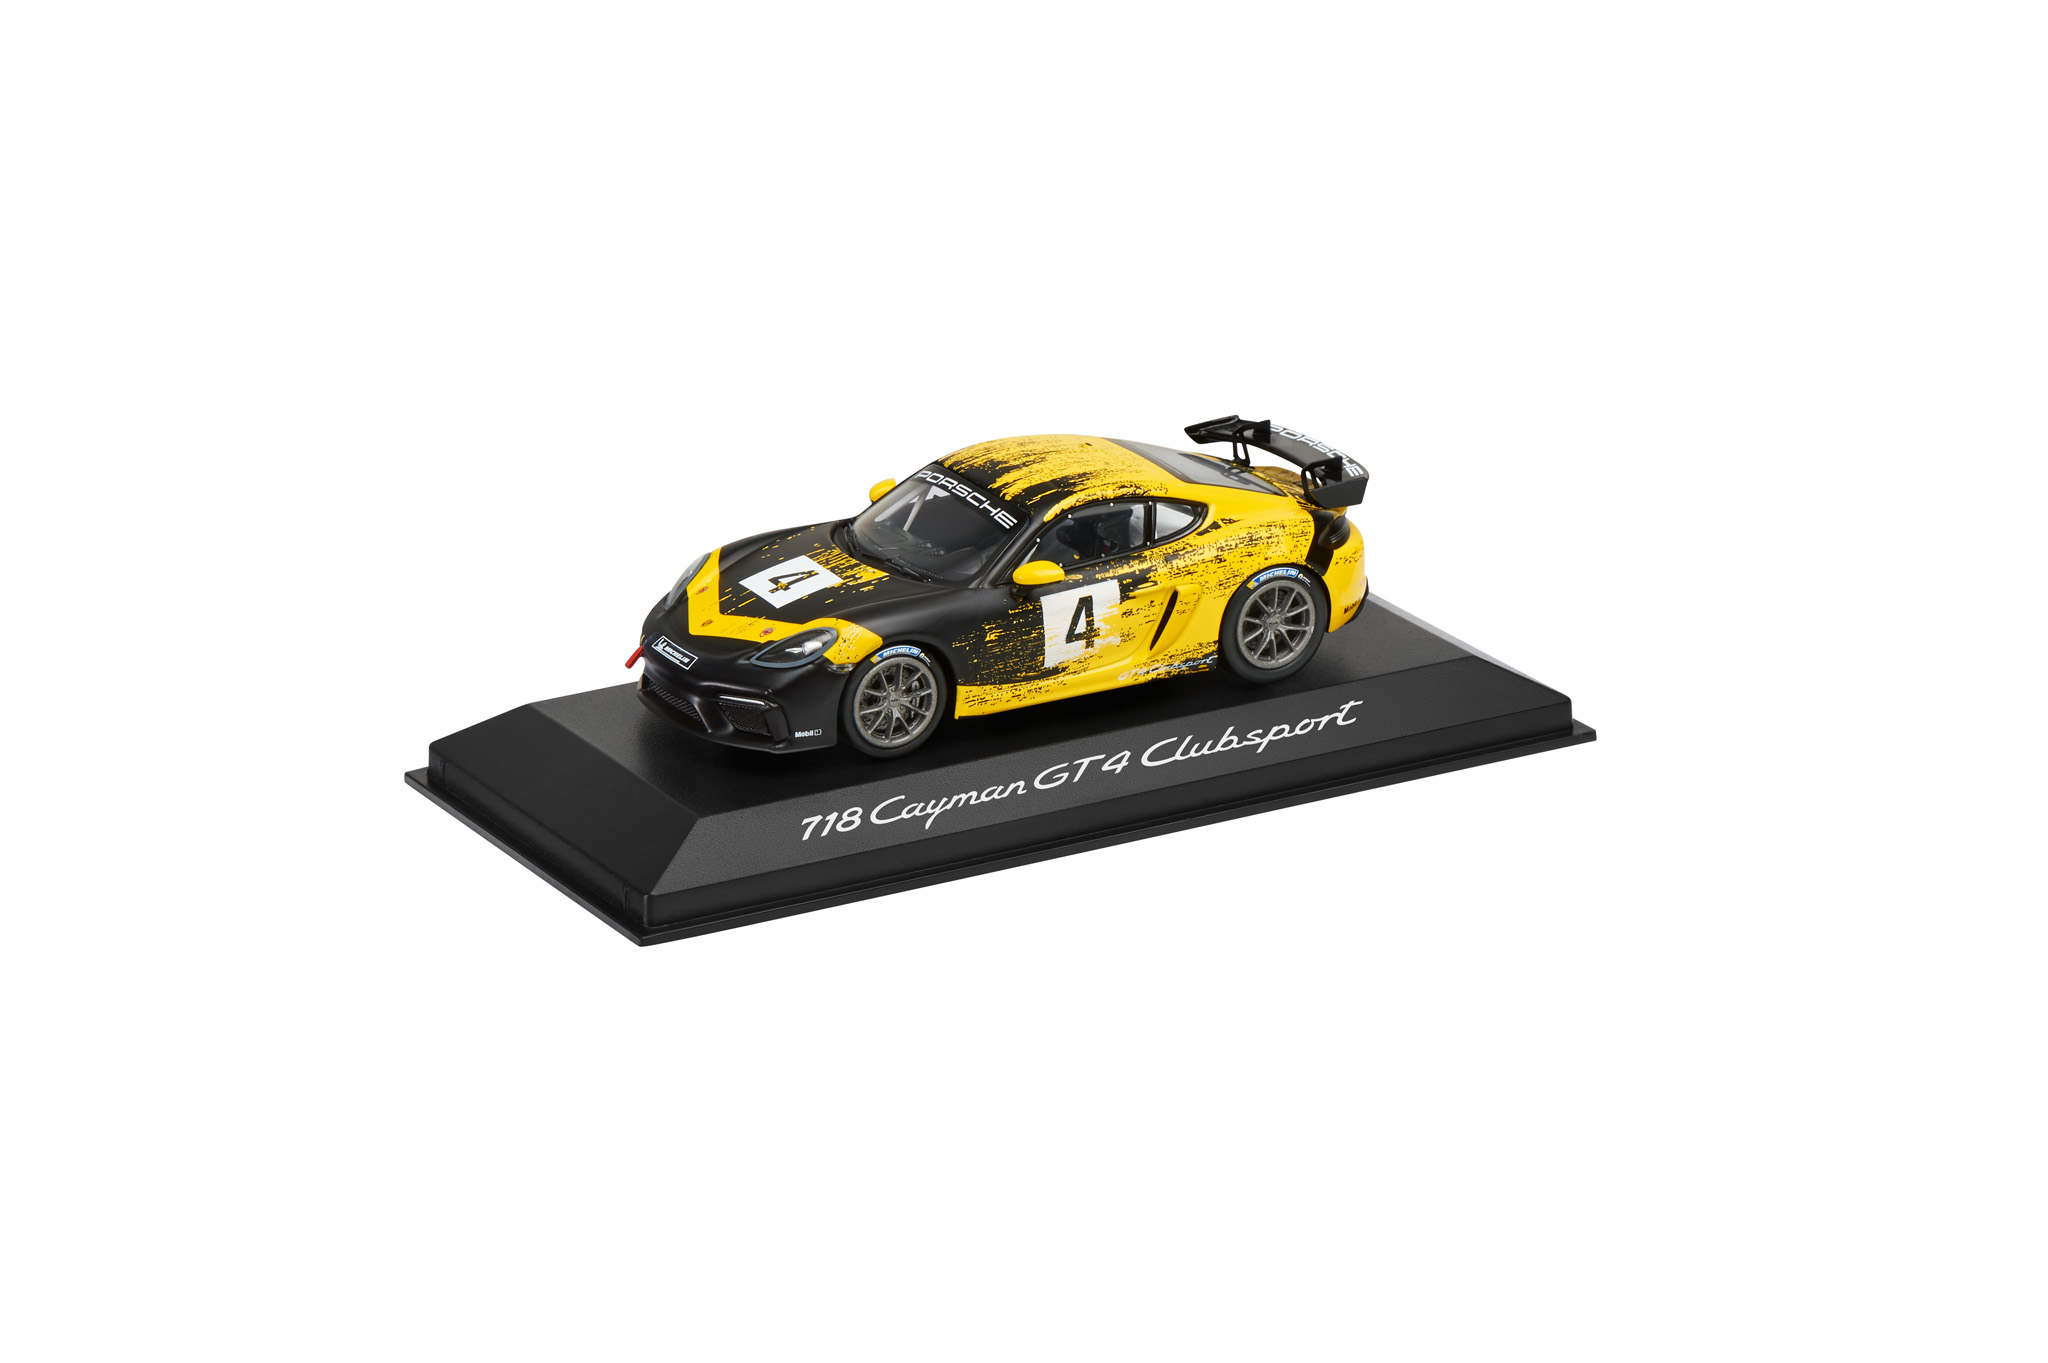 Модель авто 718 Cayman GT4, Calendar Edition, DieCast, racing yellow, black, 1:43